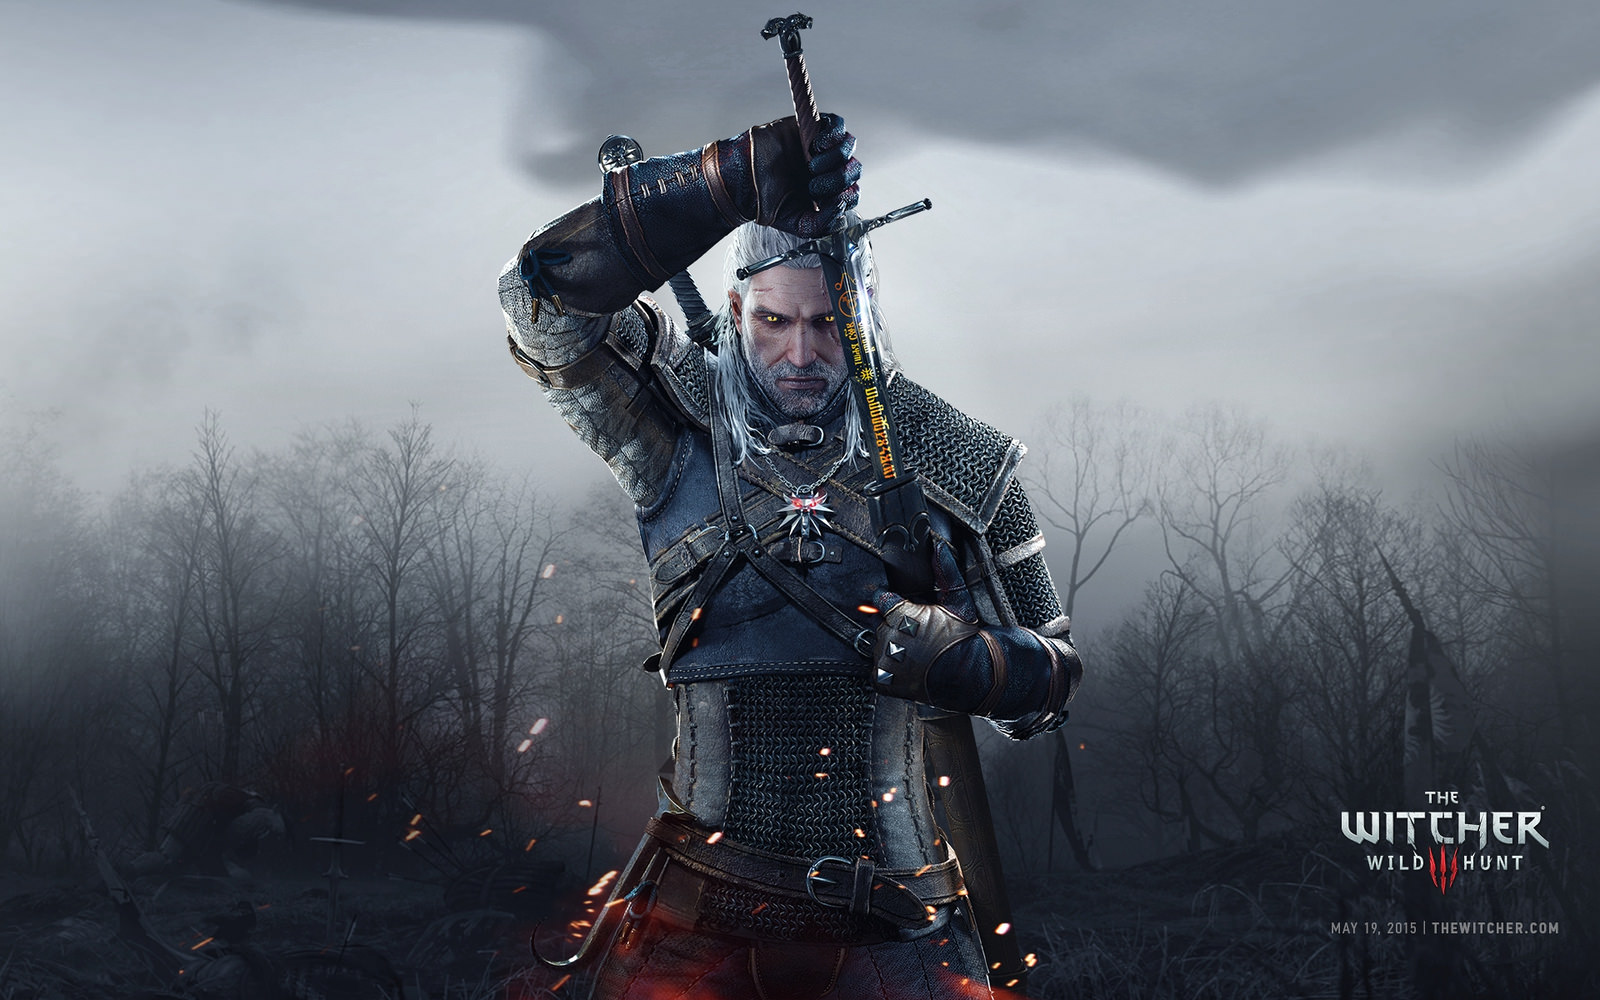 The Witcher 3: Wild Hunt czyli Wiedźmin 3: Dziki Gon